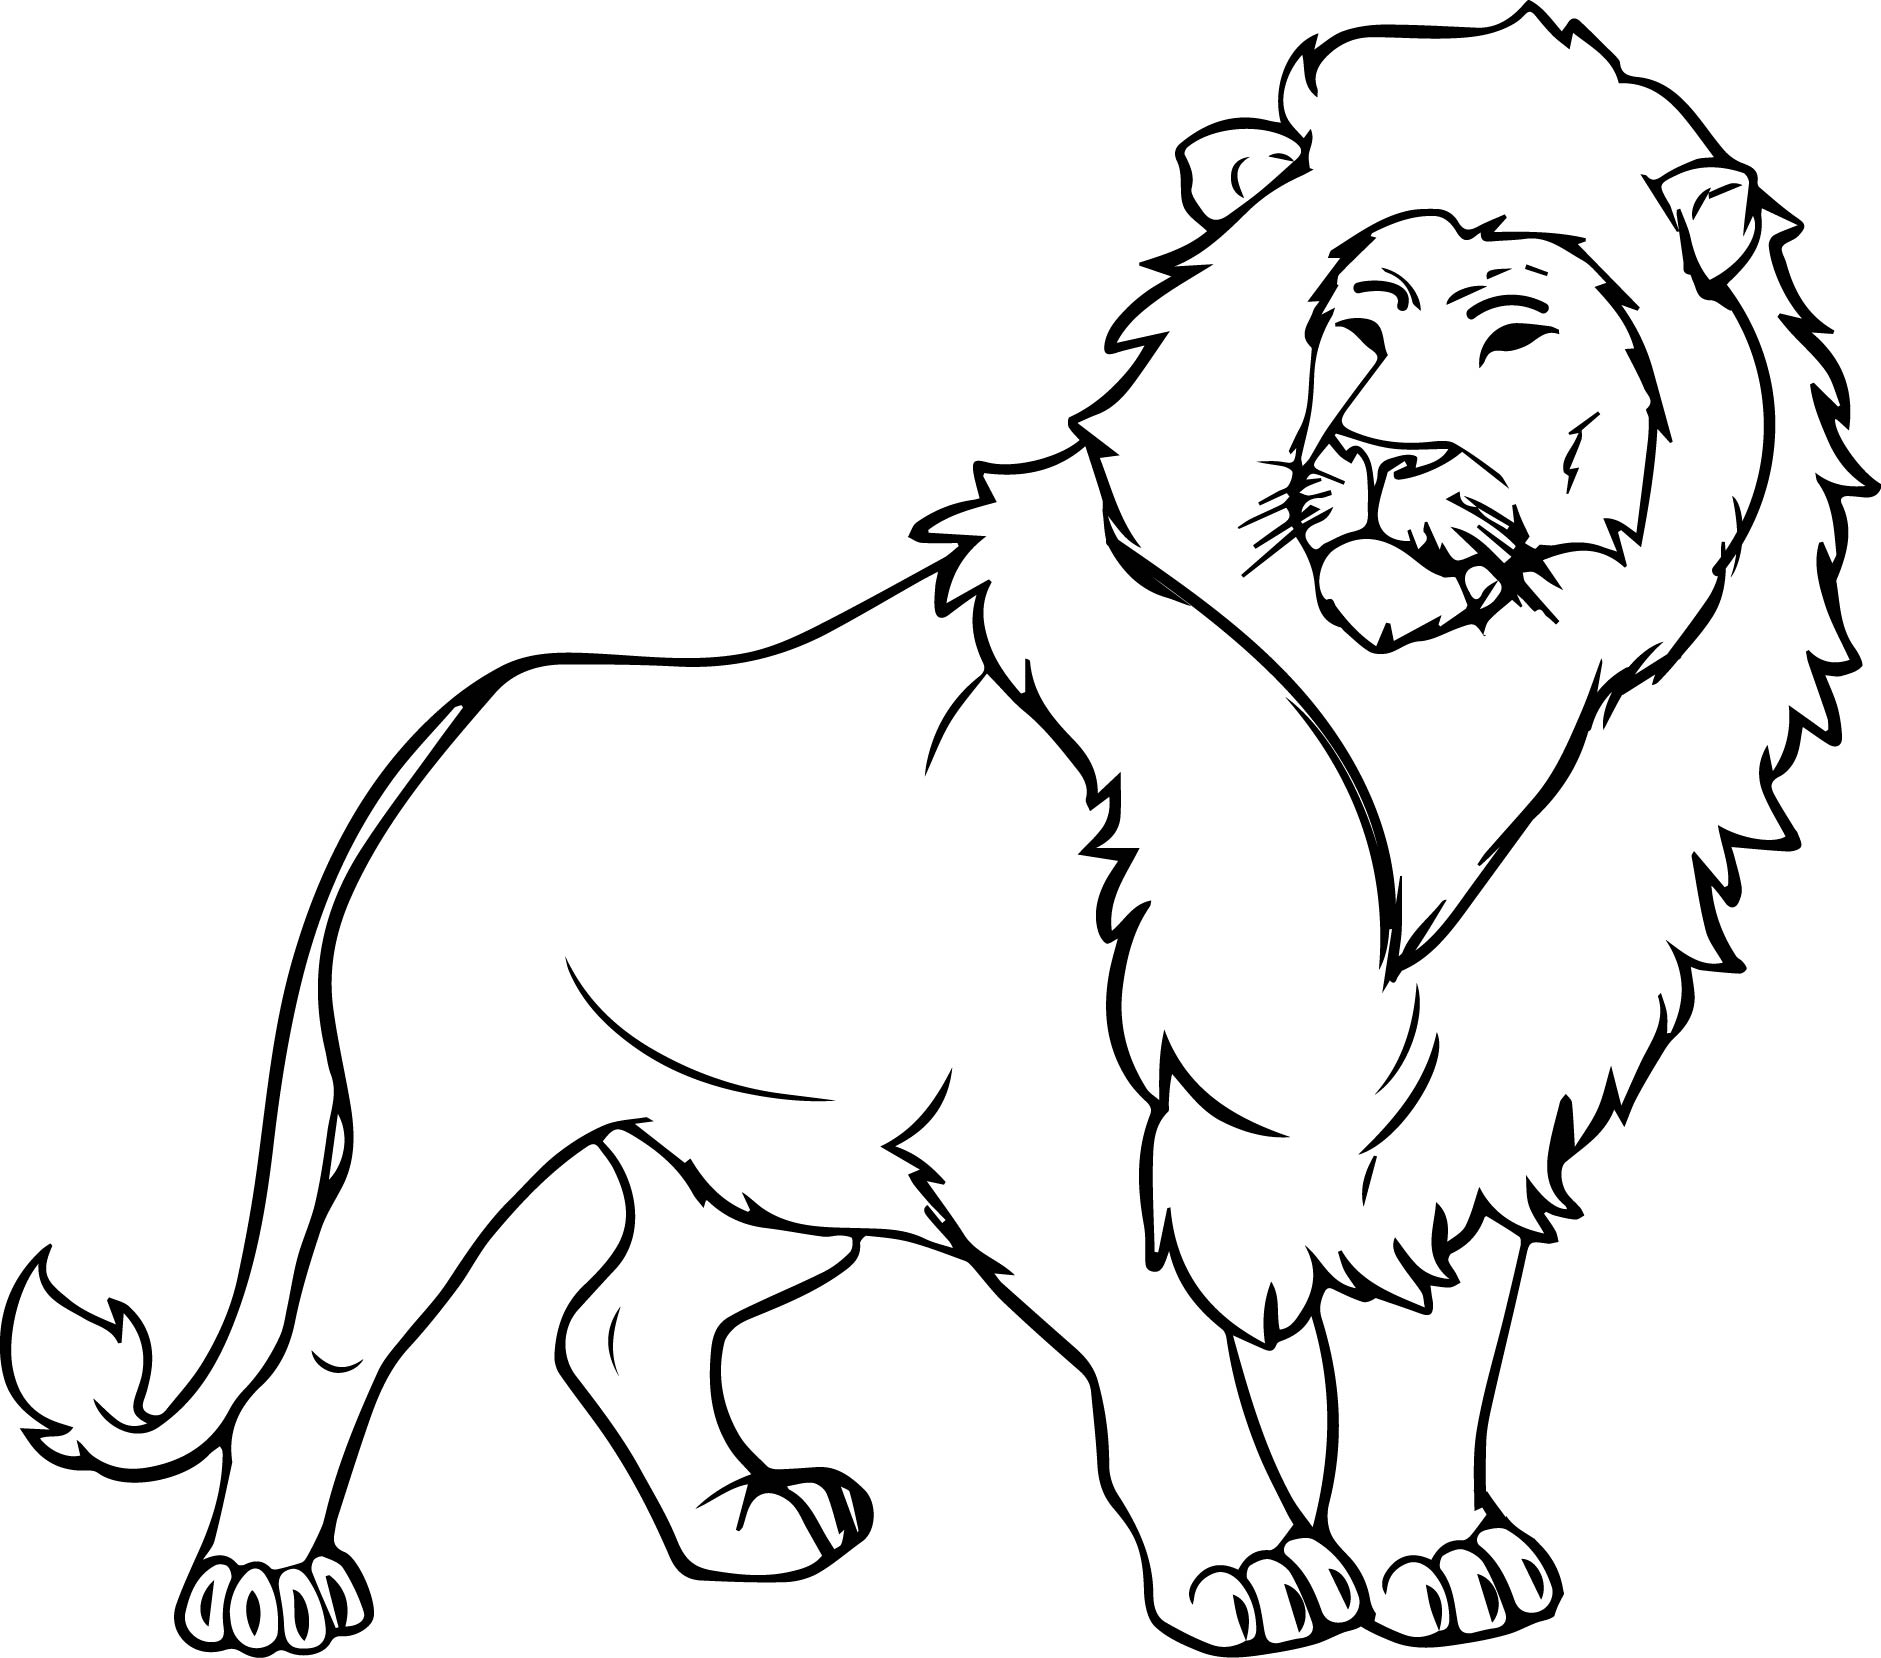 picture of lion coloring page lion to download lion kids coloring pages of picture coloring page lion